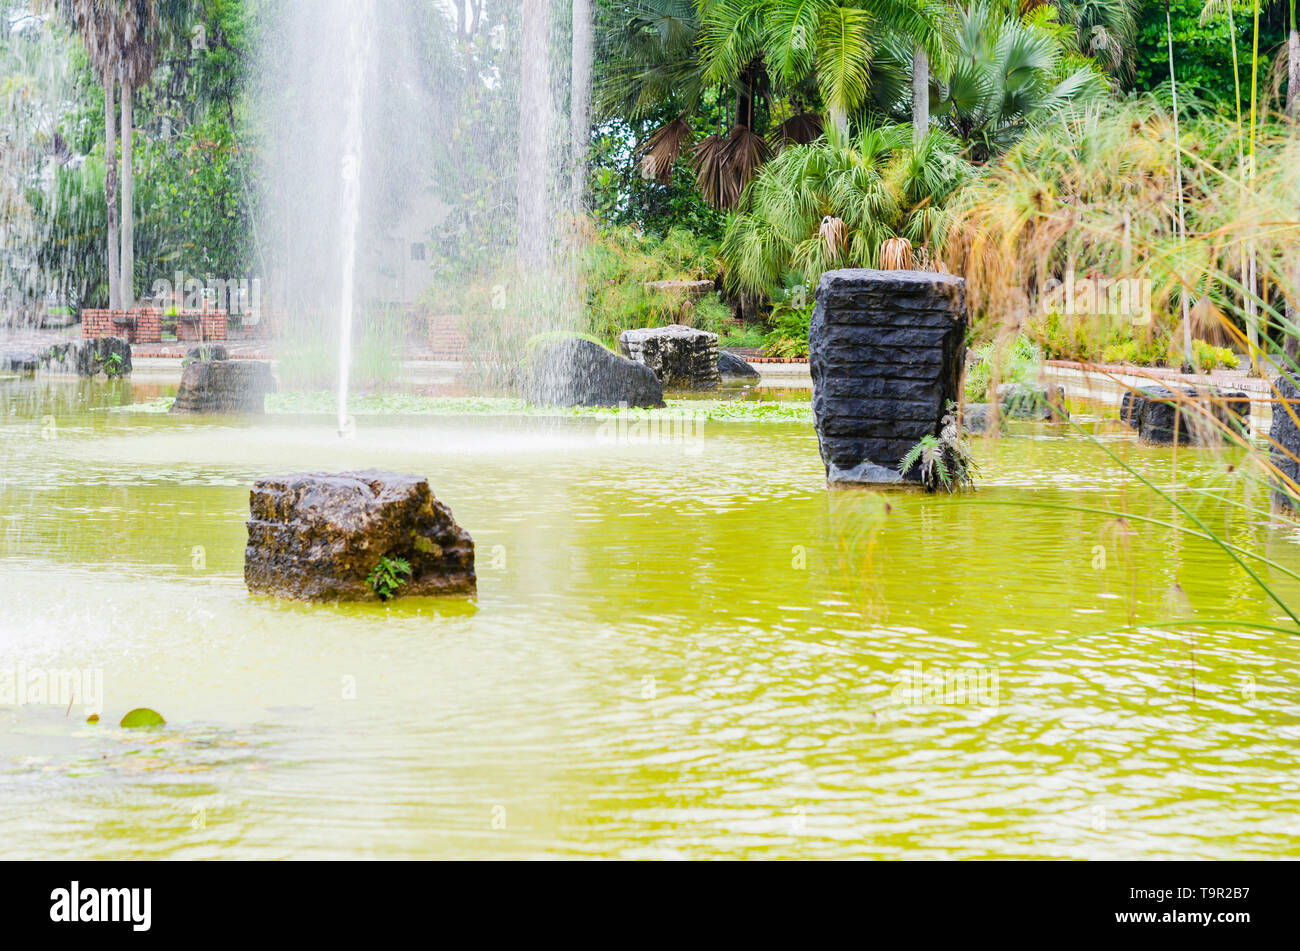 pond with granite rocks adorning a fountain in the foreground and background surrounded by vegetation and tropical freshness - Stock Image